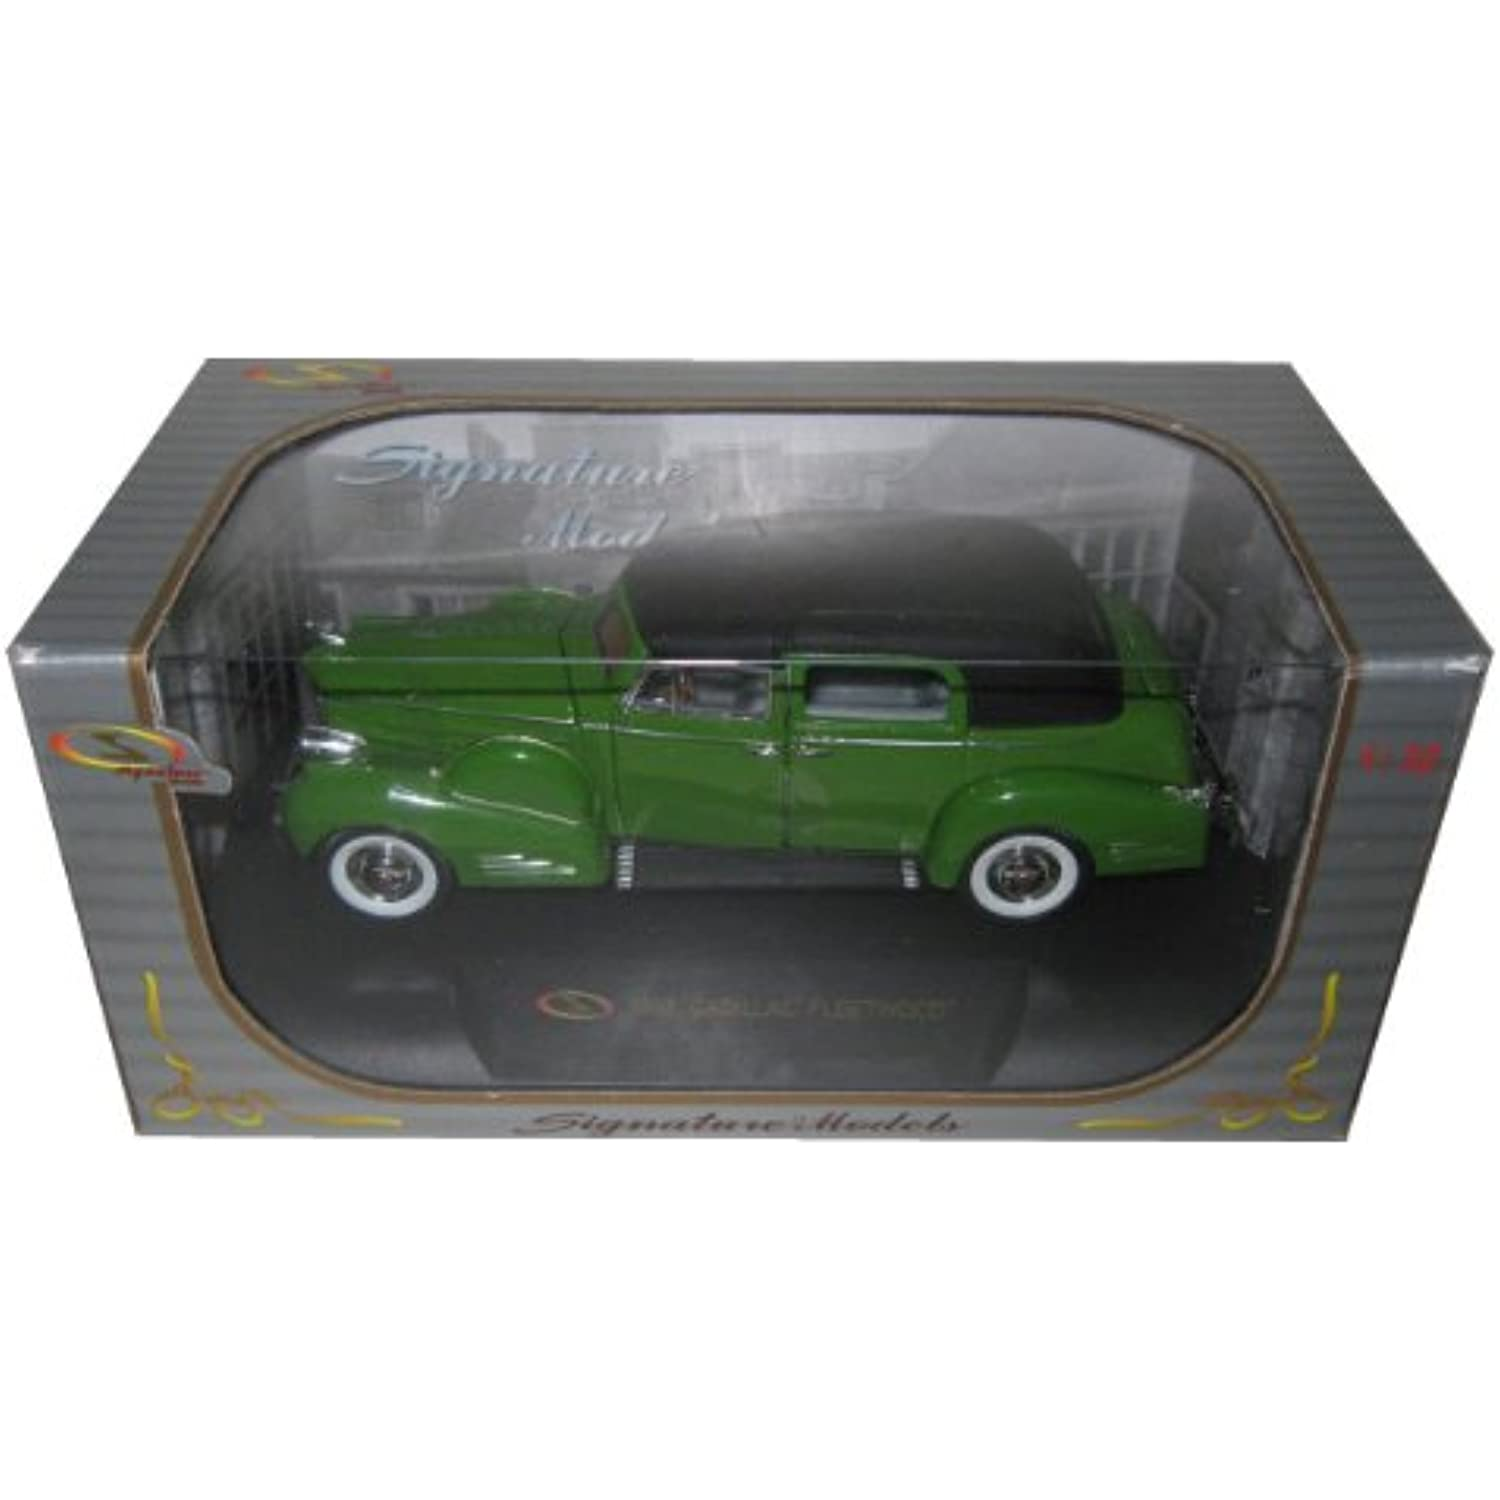 1938 Cadillac Series 90 V16 V16 V16 Fleetwood Green 1/32 by Signature Models 32340 4a0cba